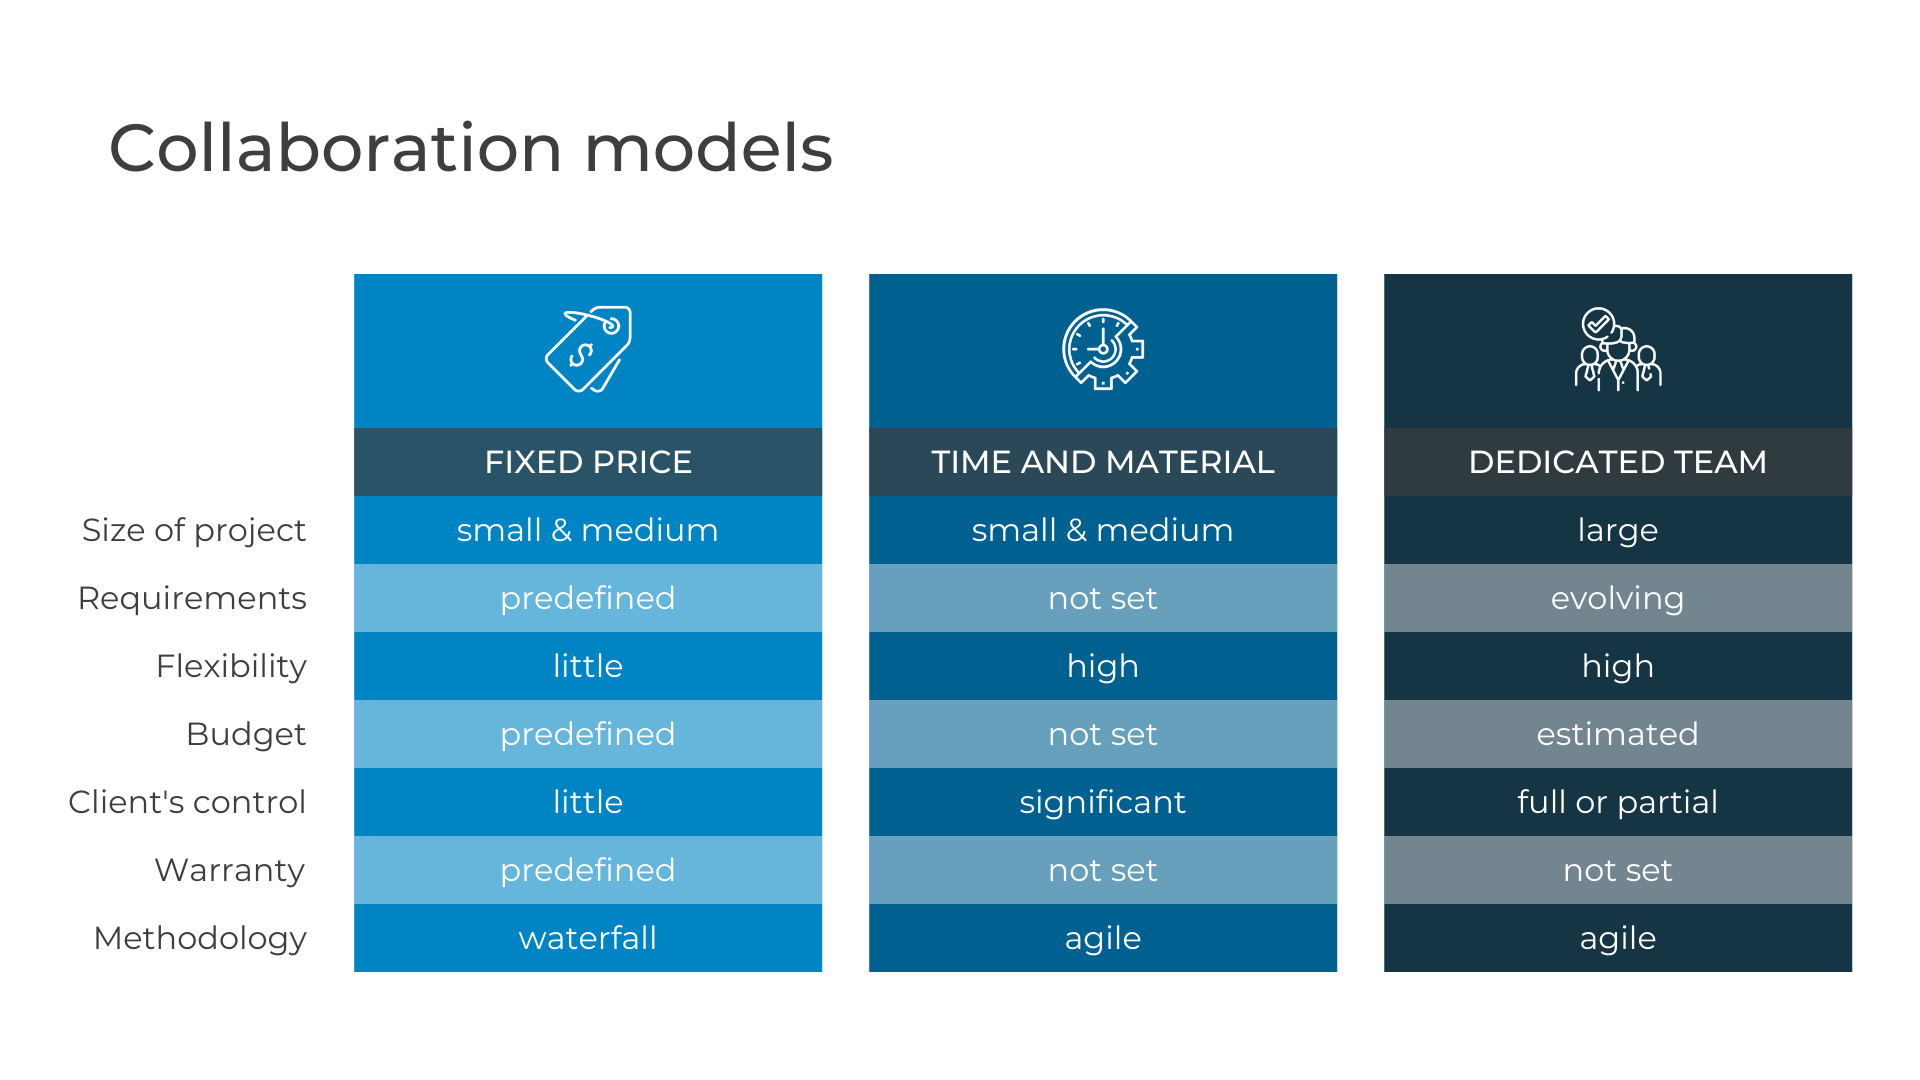 Collaboration models 1 - Dedicated Team Model: What is it, Pros and Cons